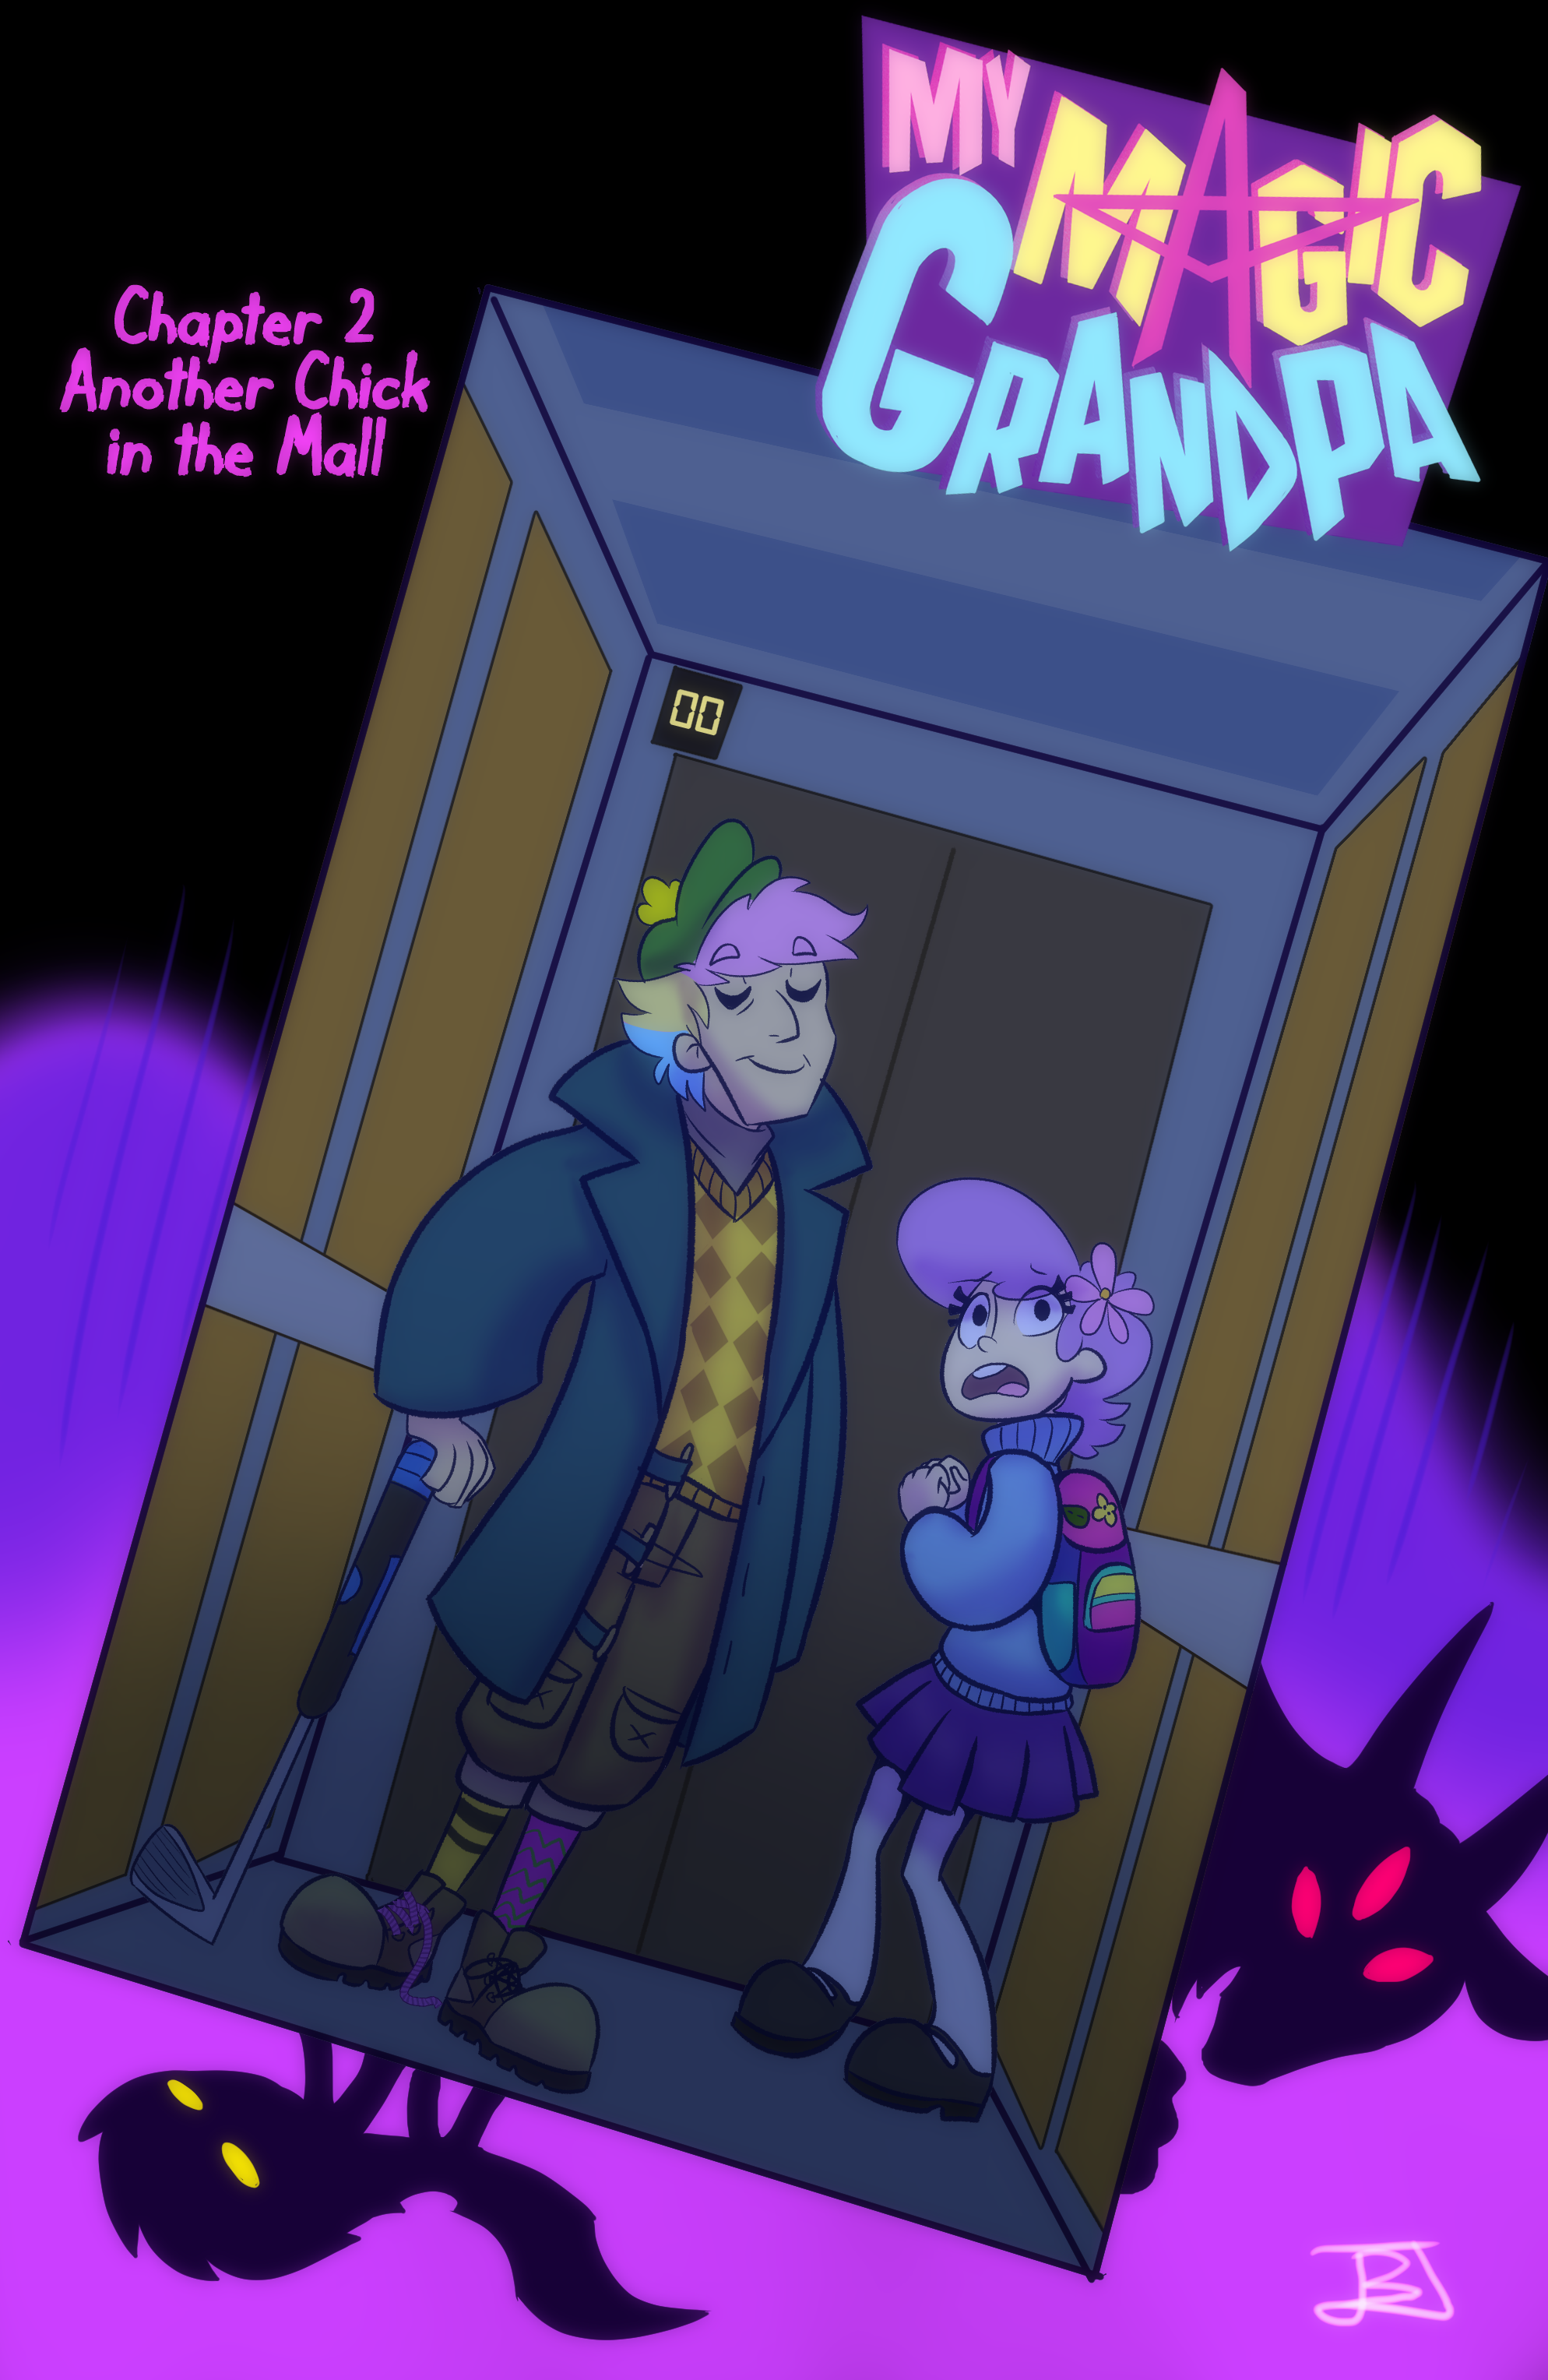 Ch 2: Another Chick in the Mall - COVER